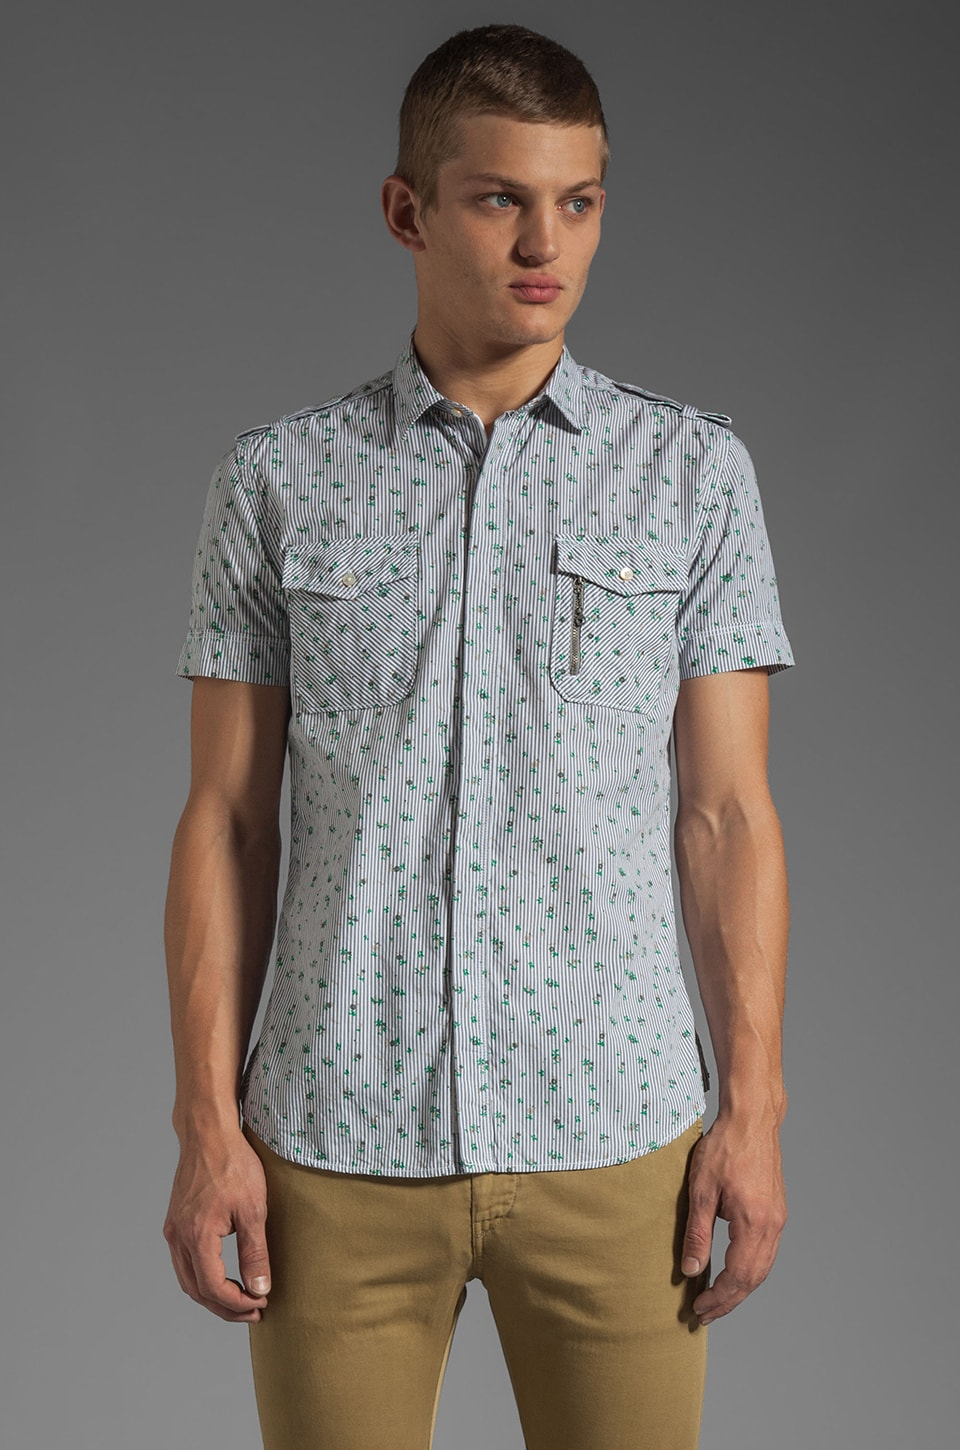 Diesel Spirk Short Sleeve Shirt in Light Grey